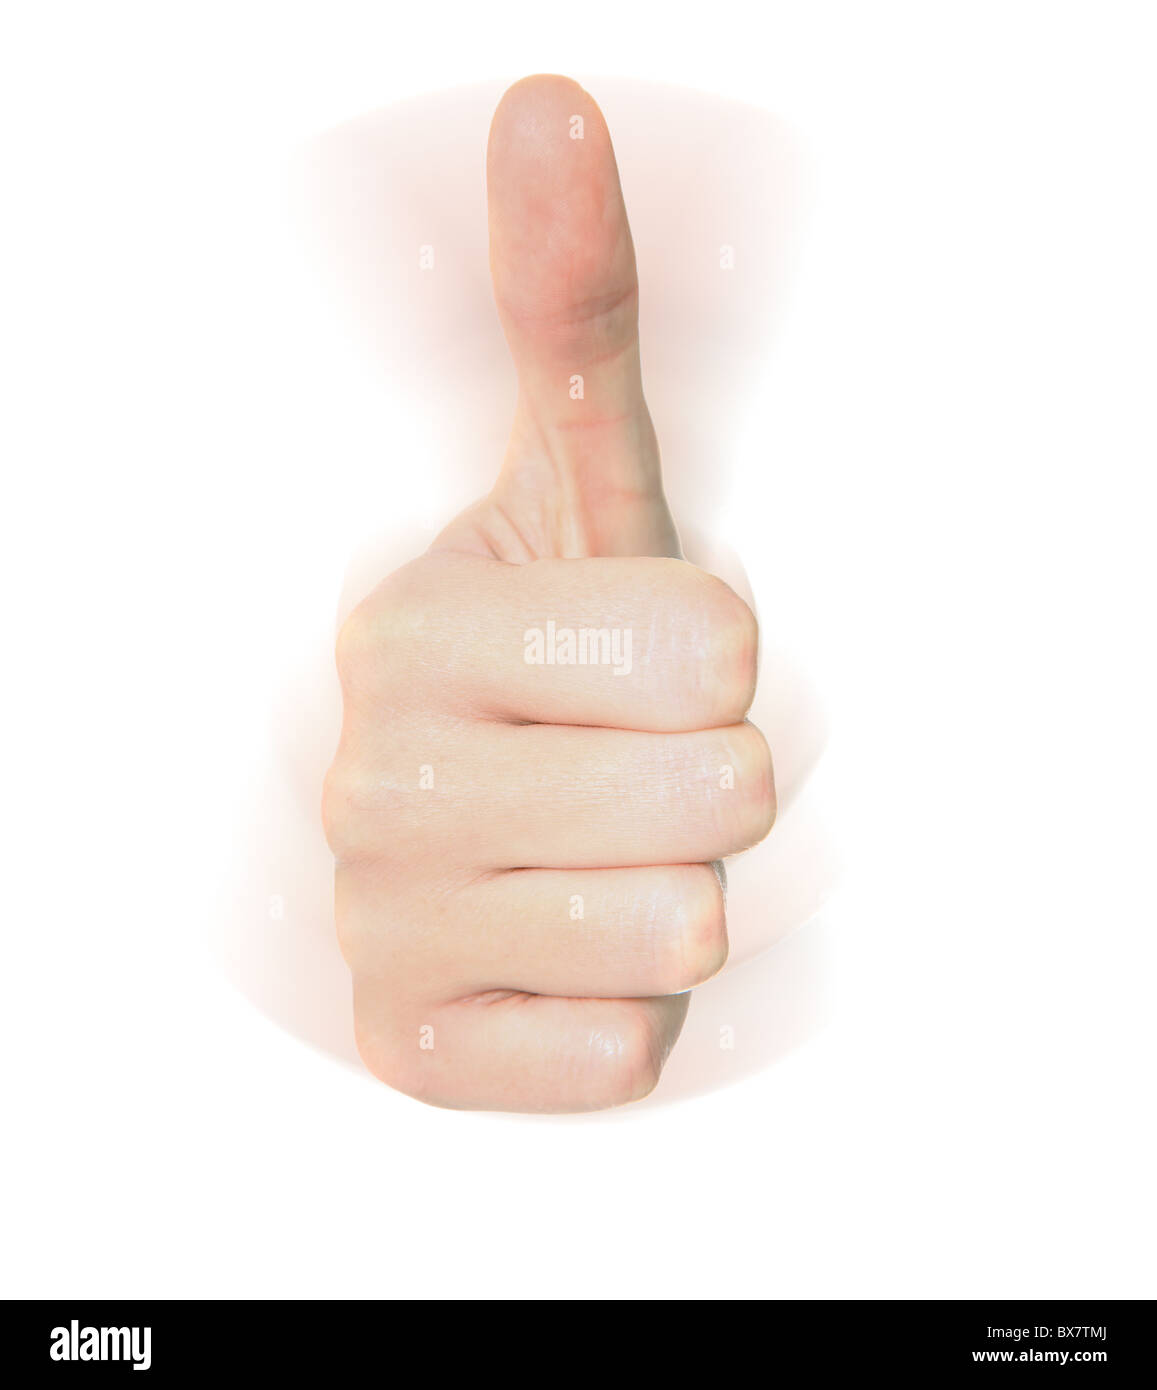 Caucasian hand making thumbs up sign. All on white background. - Stock Image